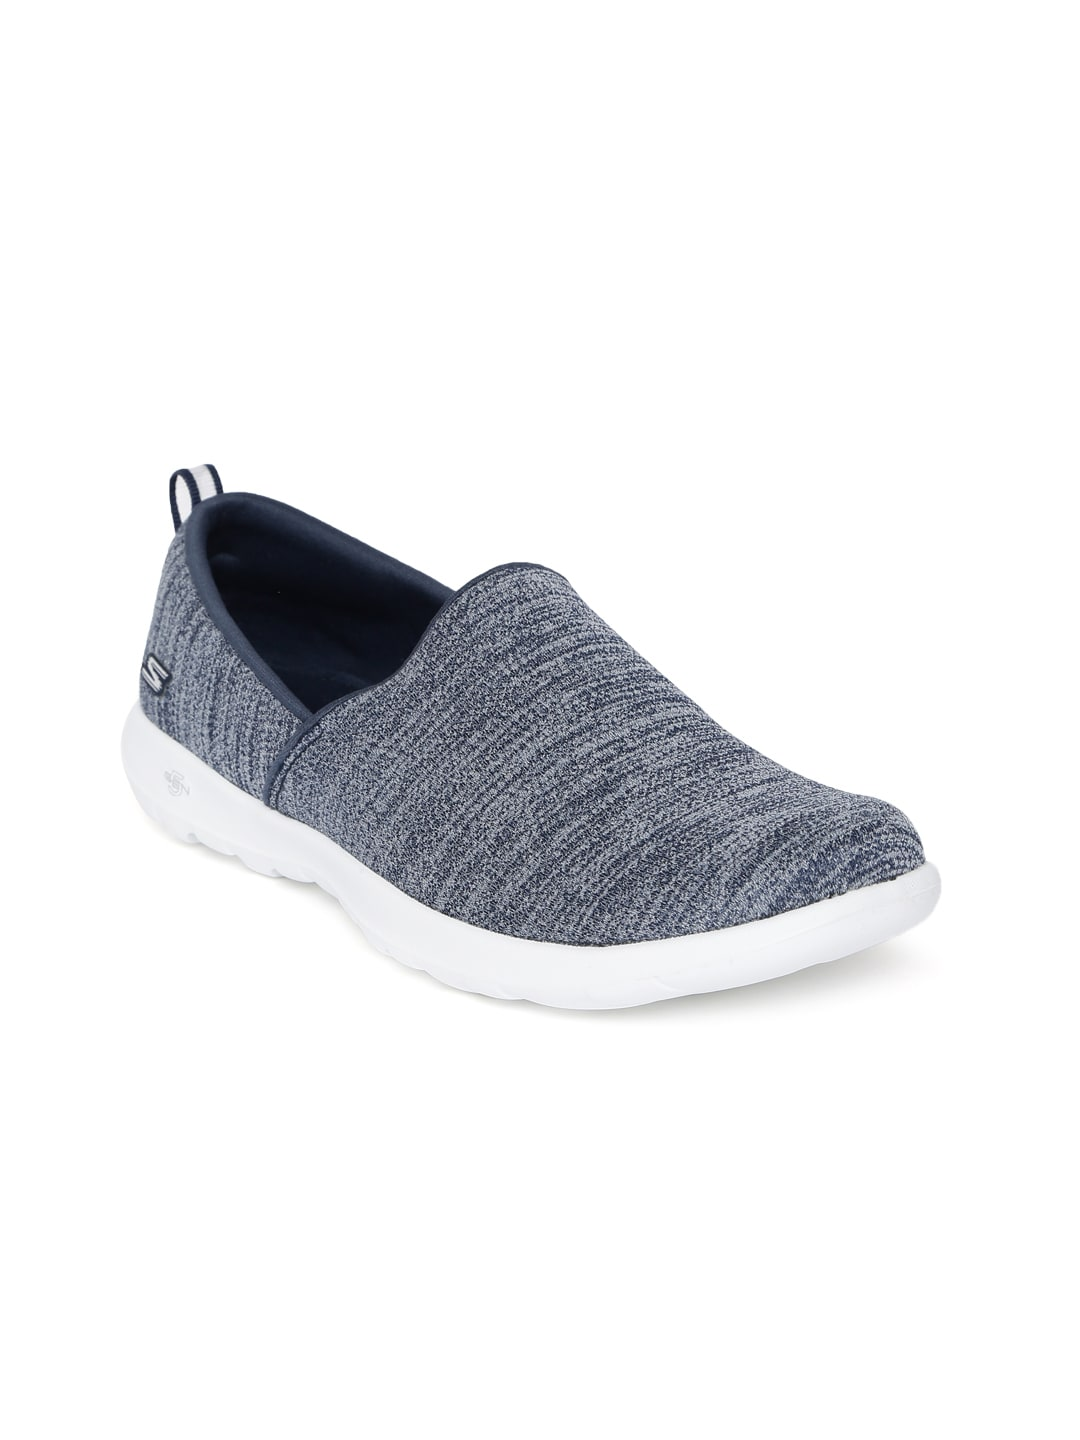 Skechers Buy Skechers Footwear Online At Best Prices Myntra